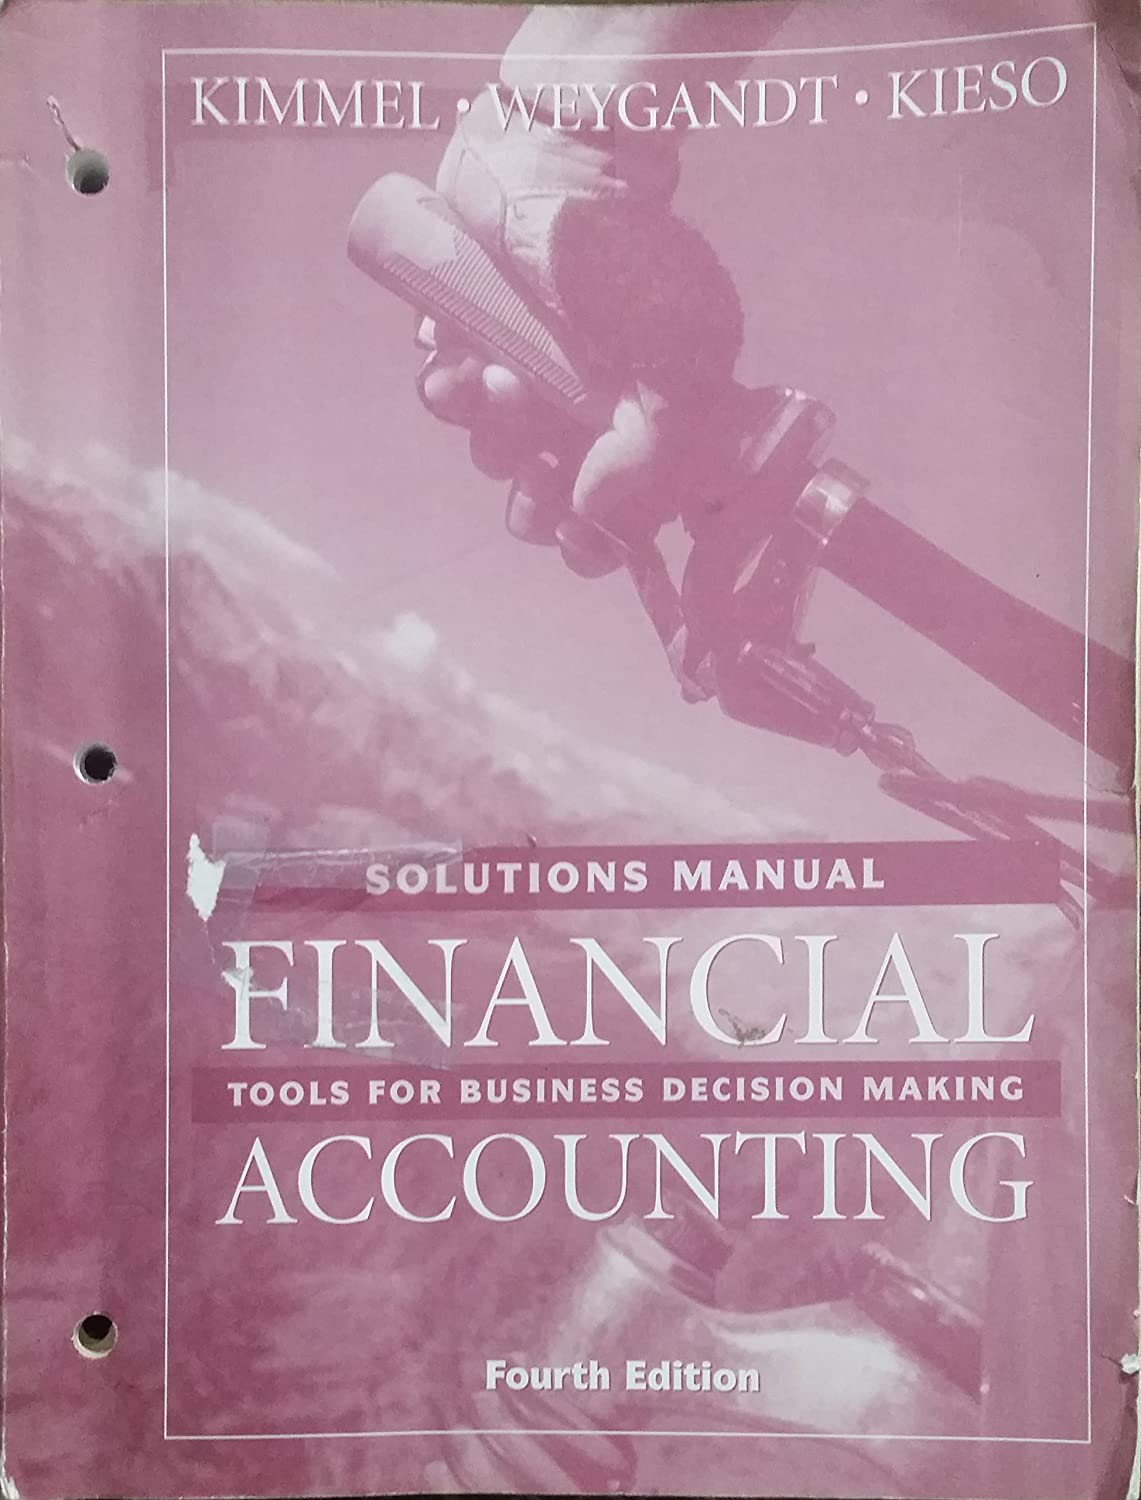 Amazon.com: Solutions Manual Financial Accounting: Tools for Business  Decision Making - Fourth Edition: Kimmel: Health & Personal Care